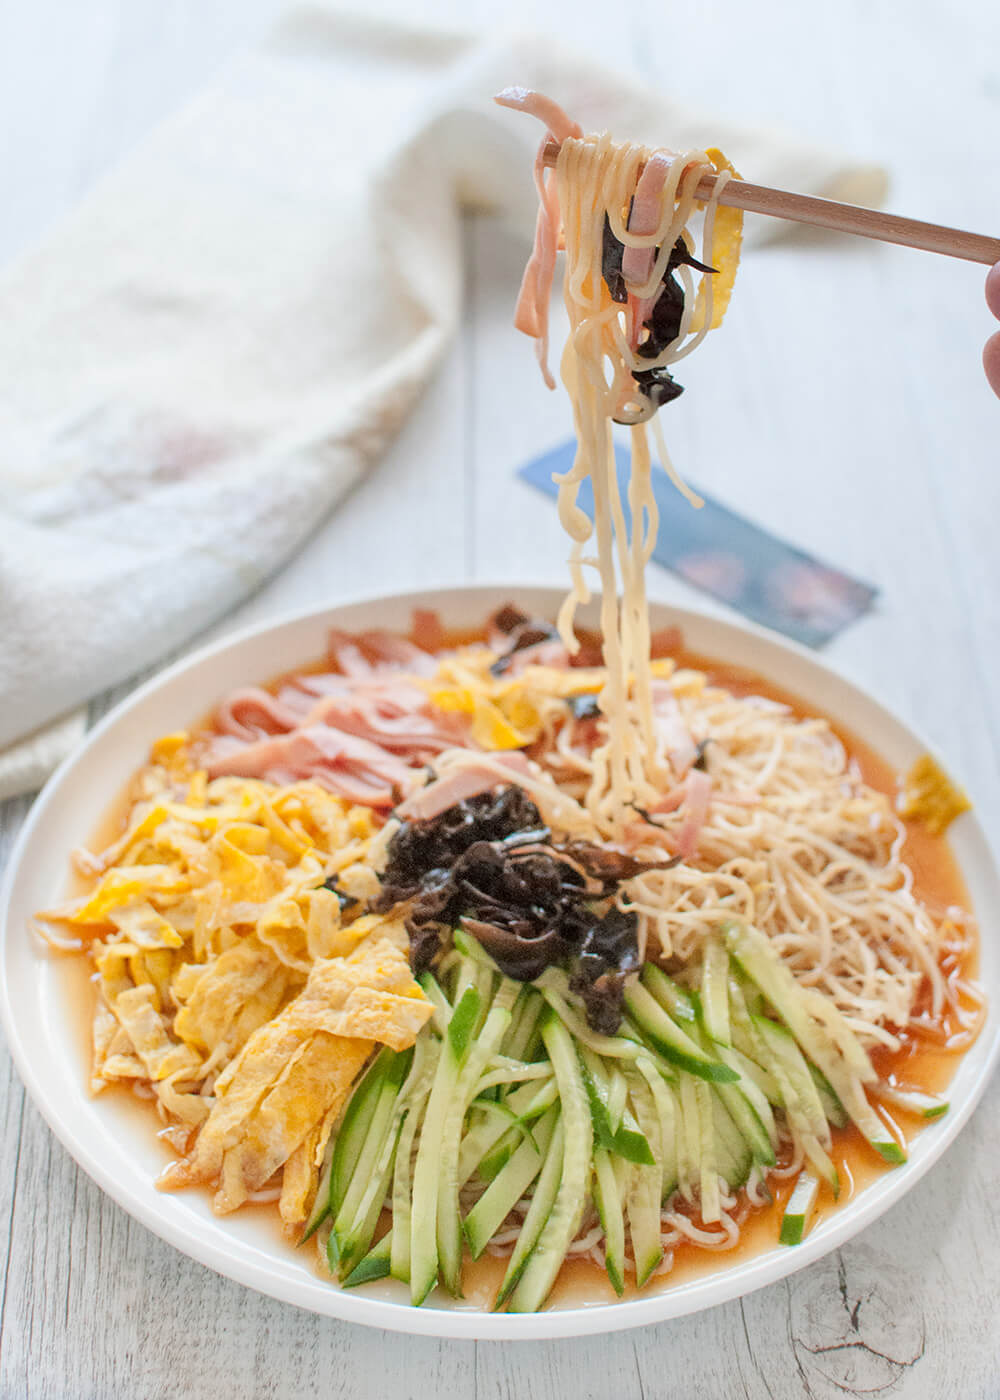 Hiyashi chūka is made with cold Chinese-style egg noodles, with sweet vinegar sauce and topped with vegetables, egg and ham. It is a great dish to have on a hot summer day.